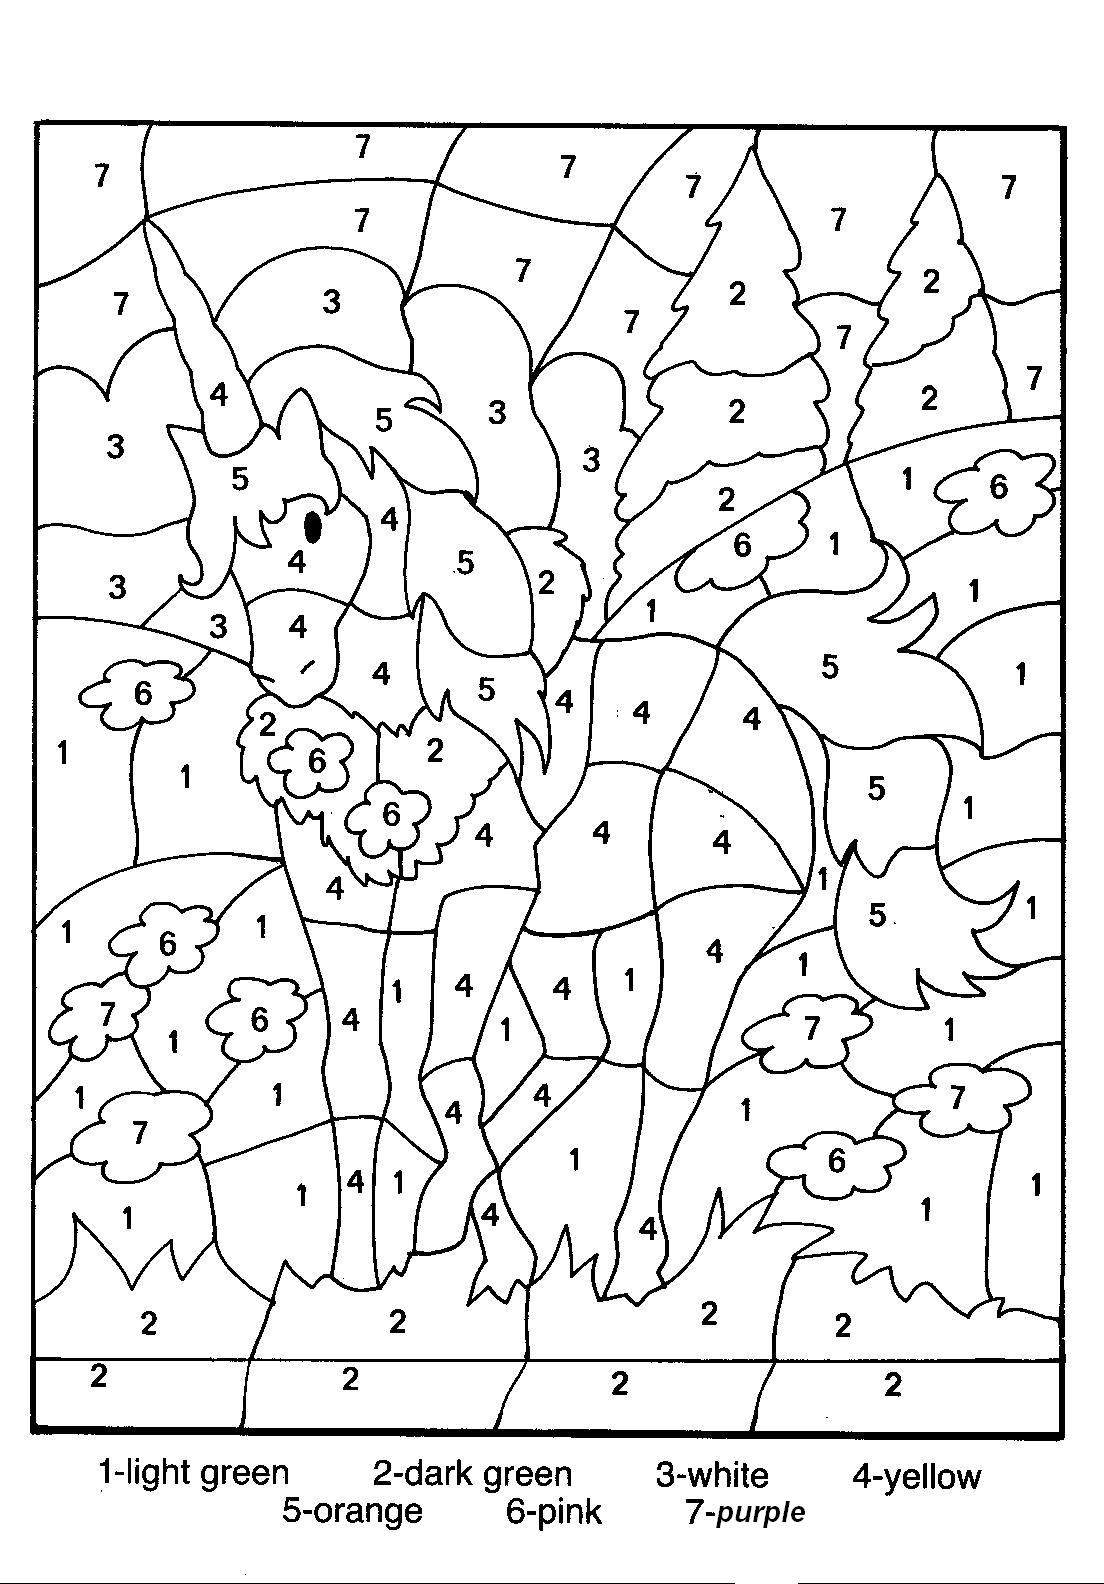 Colouring sheets to colour - Free Printable Color By Number